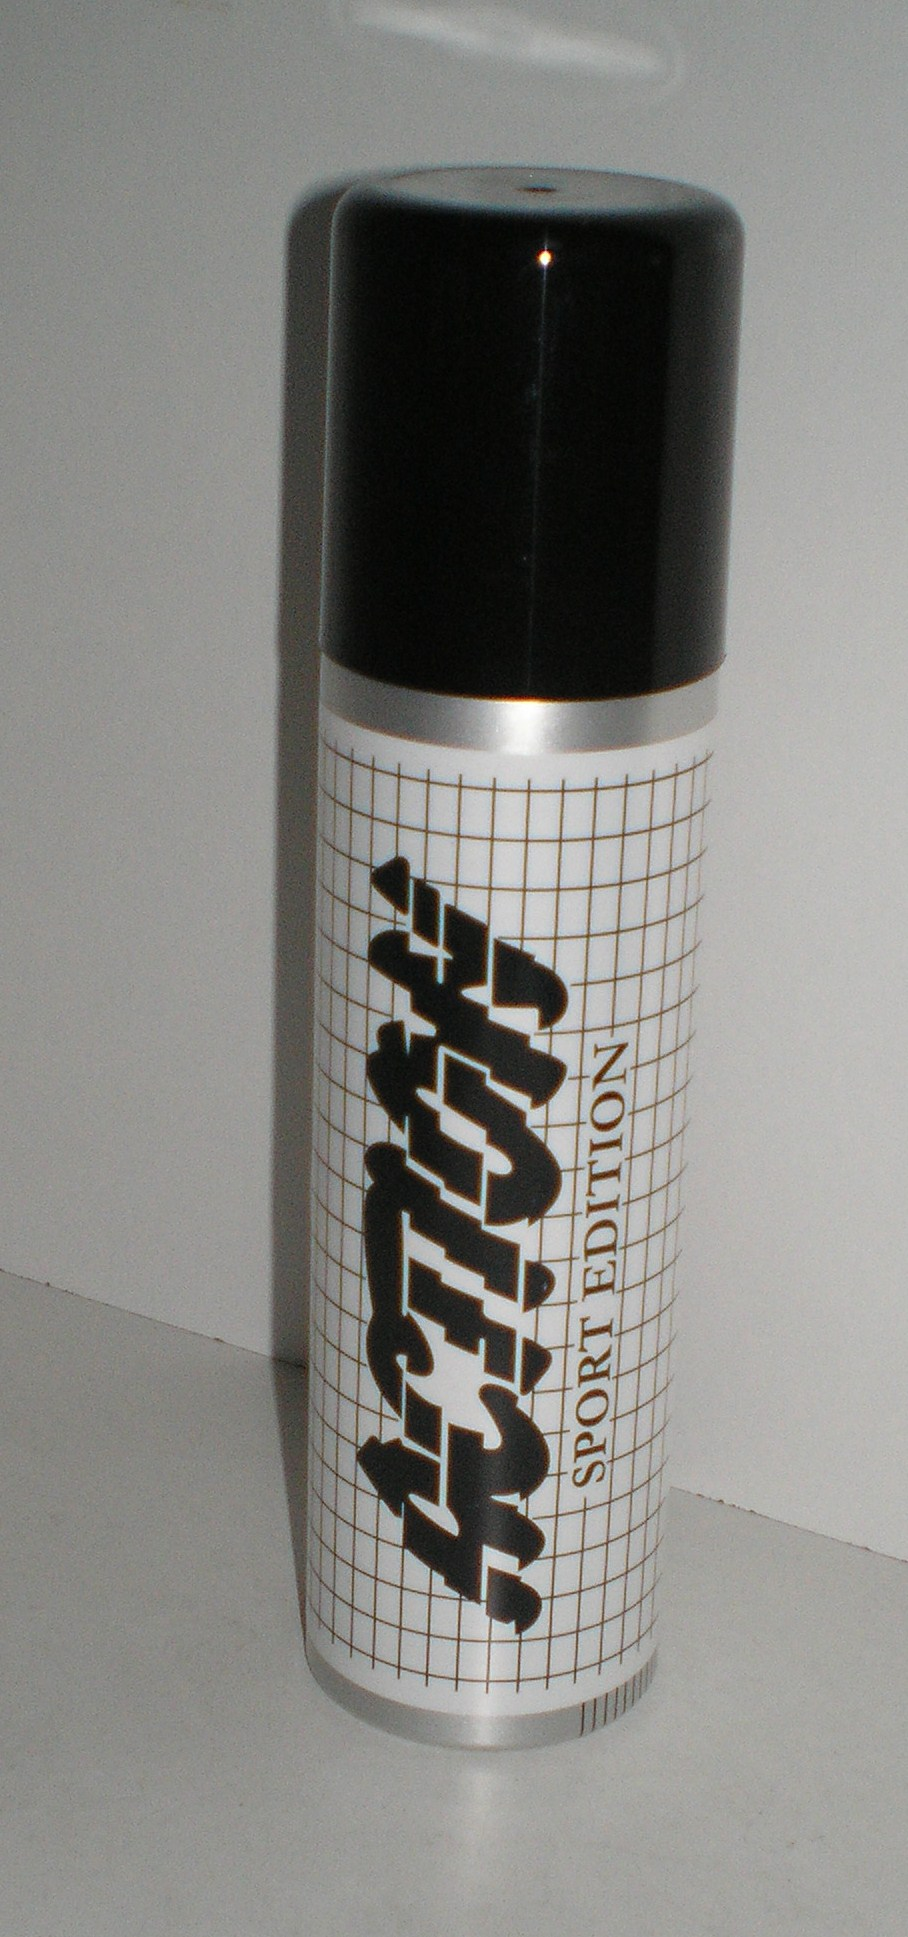 ACTION SPORT EDITION SPRAY